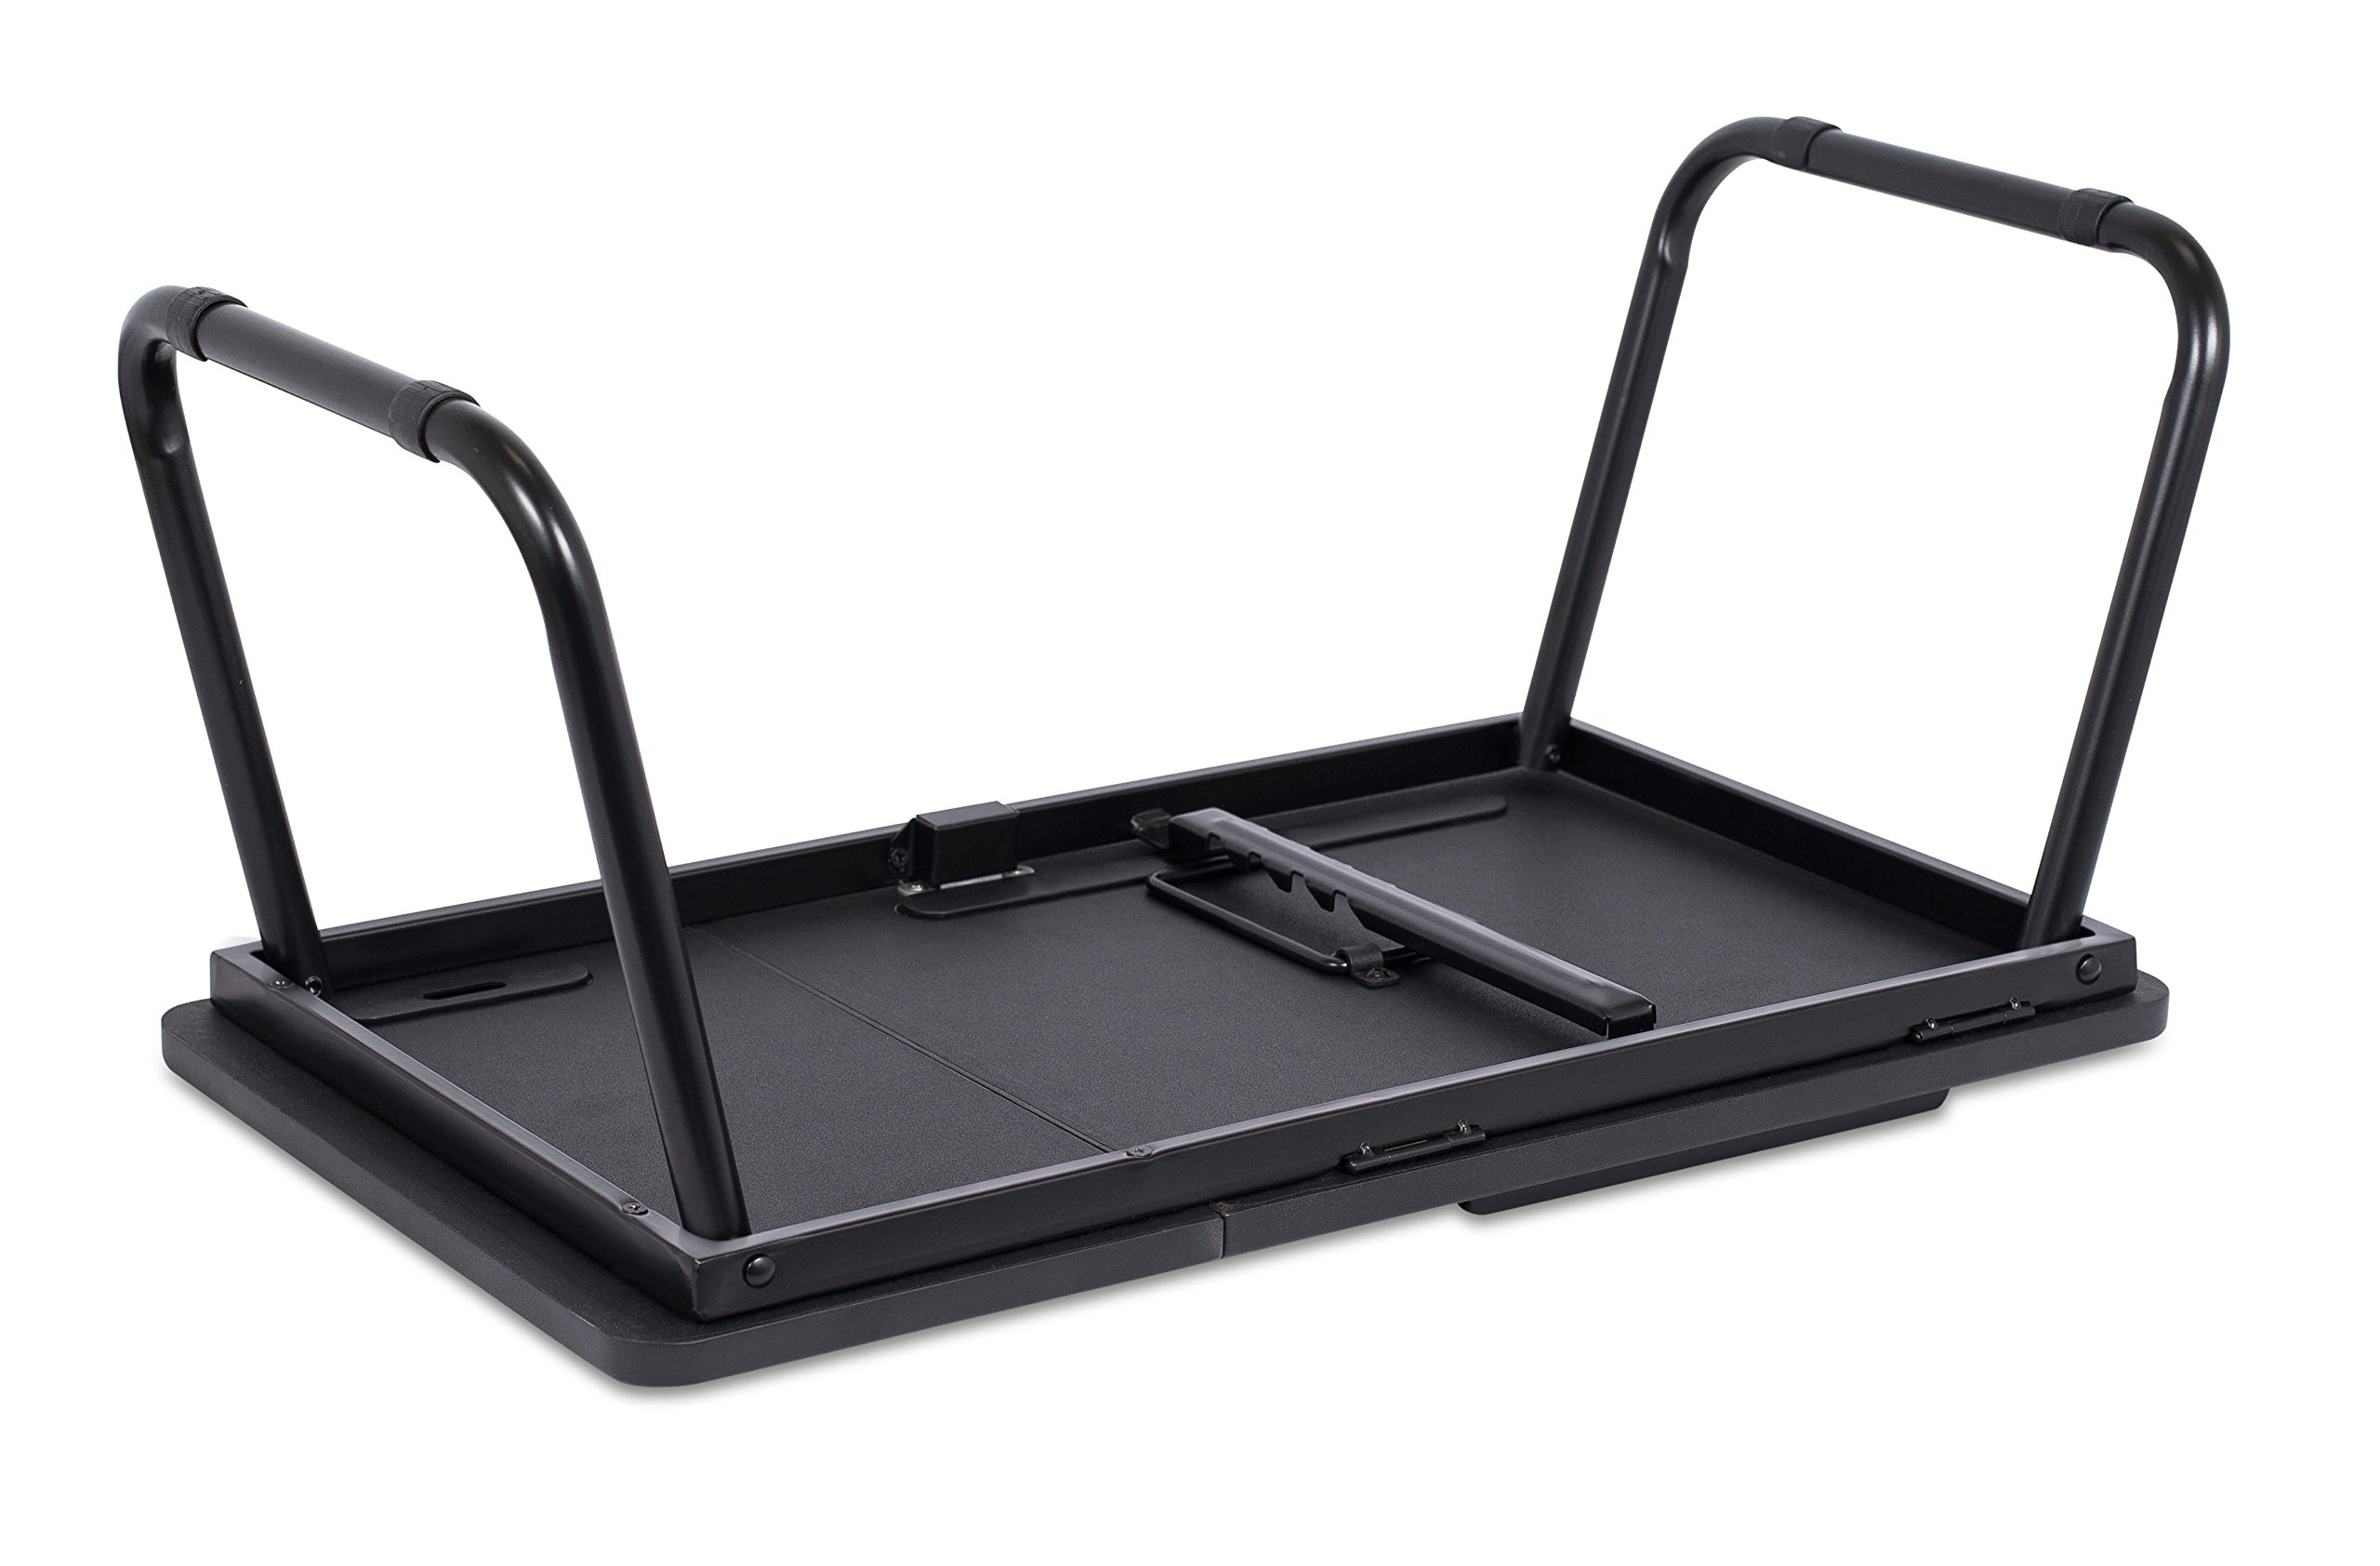 Sofia + Sam Lap Tray with Tablet & Phone Slots | Metal Folding Legs | Lap Desk with Tilting Top | Laptop Stand | Breakfast Serving Bed Tray | Black by Sofia + Sam (Image #8)